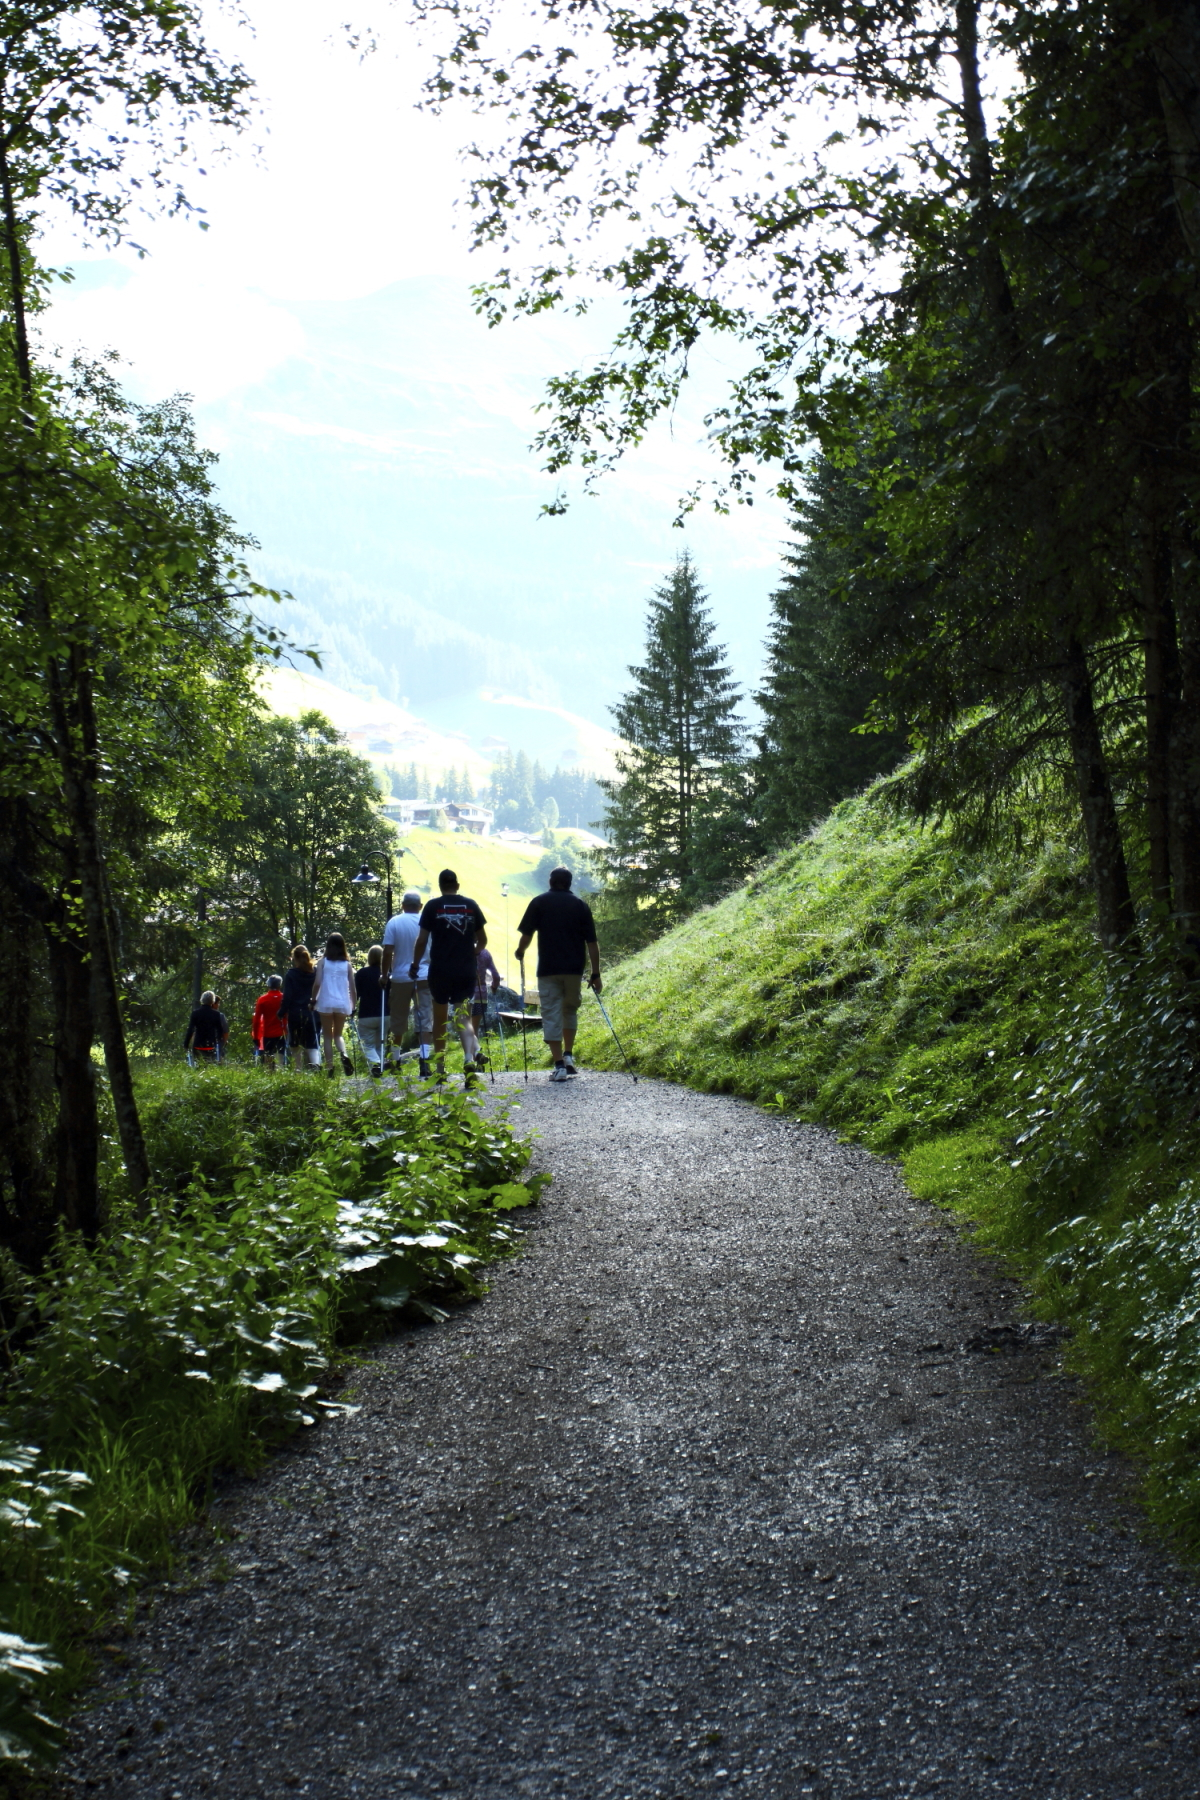 Morning walk along the Lanersbach, Hintertux, Austria